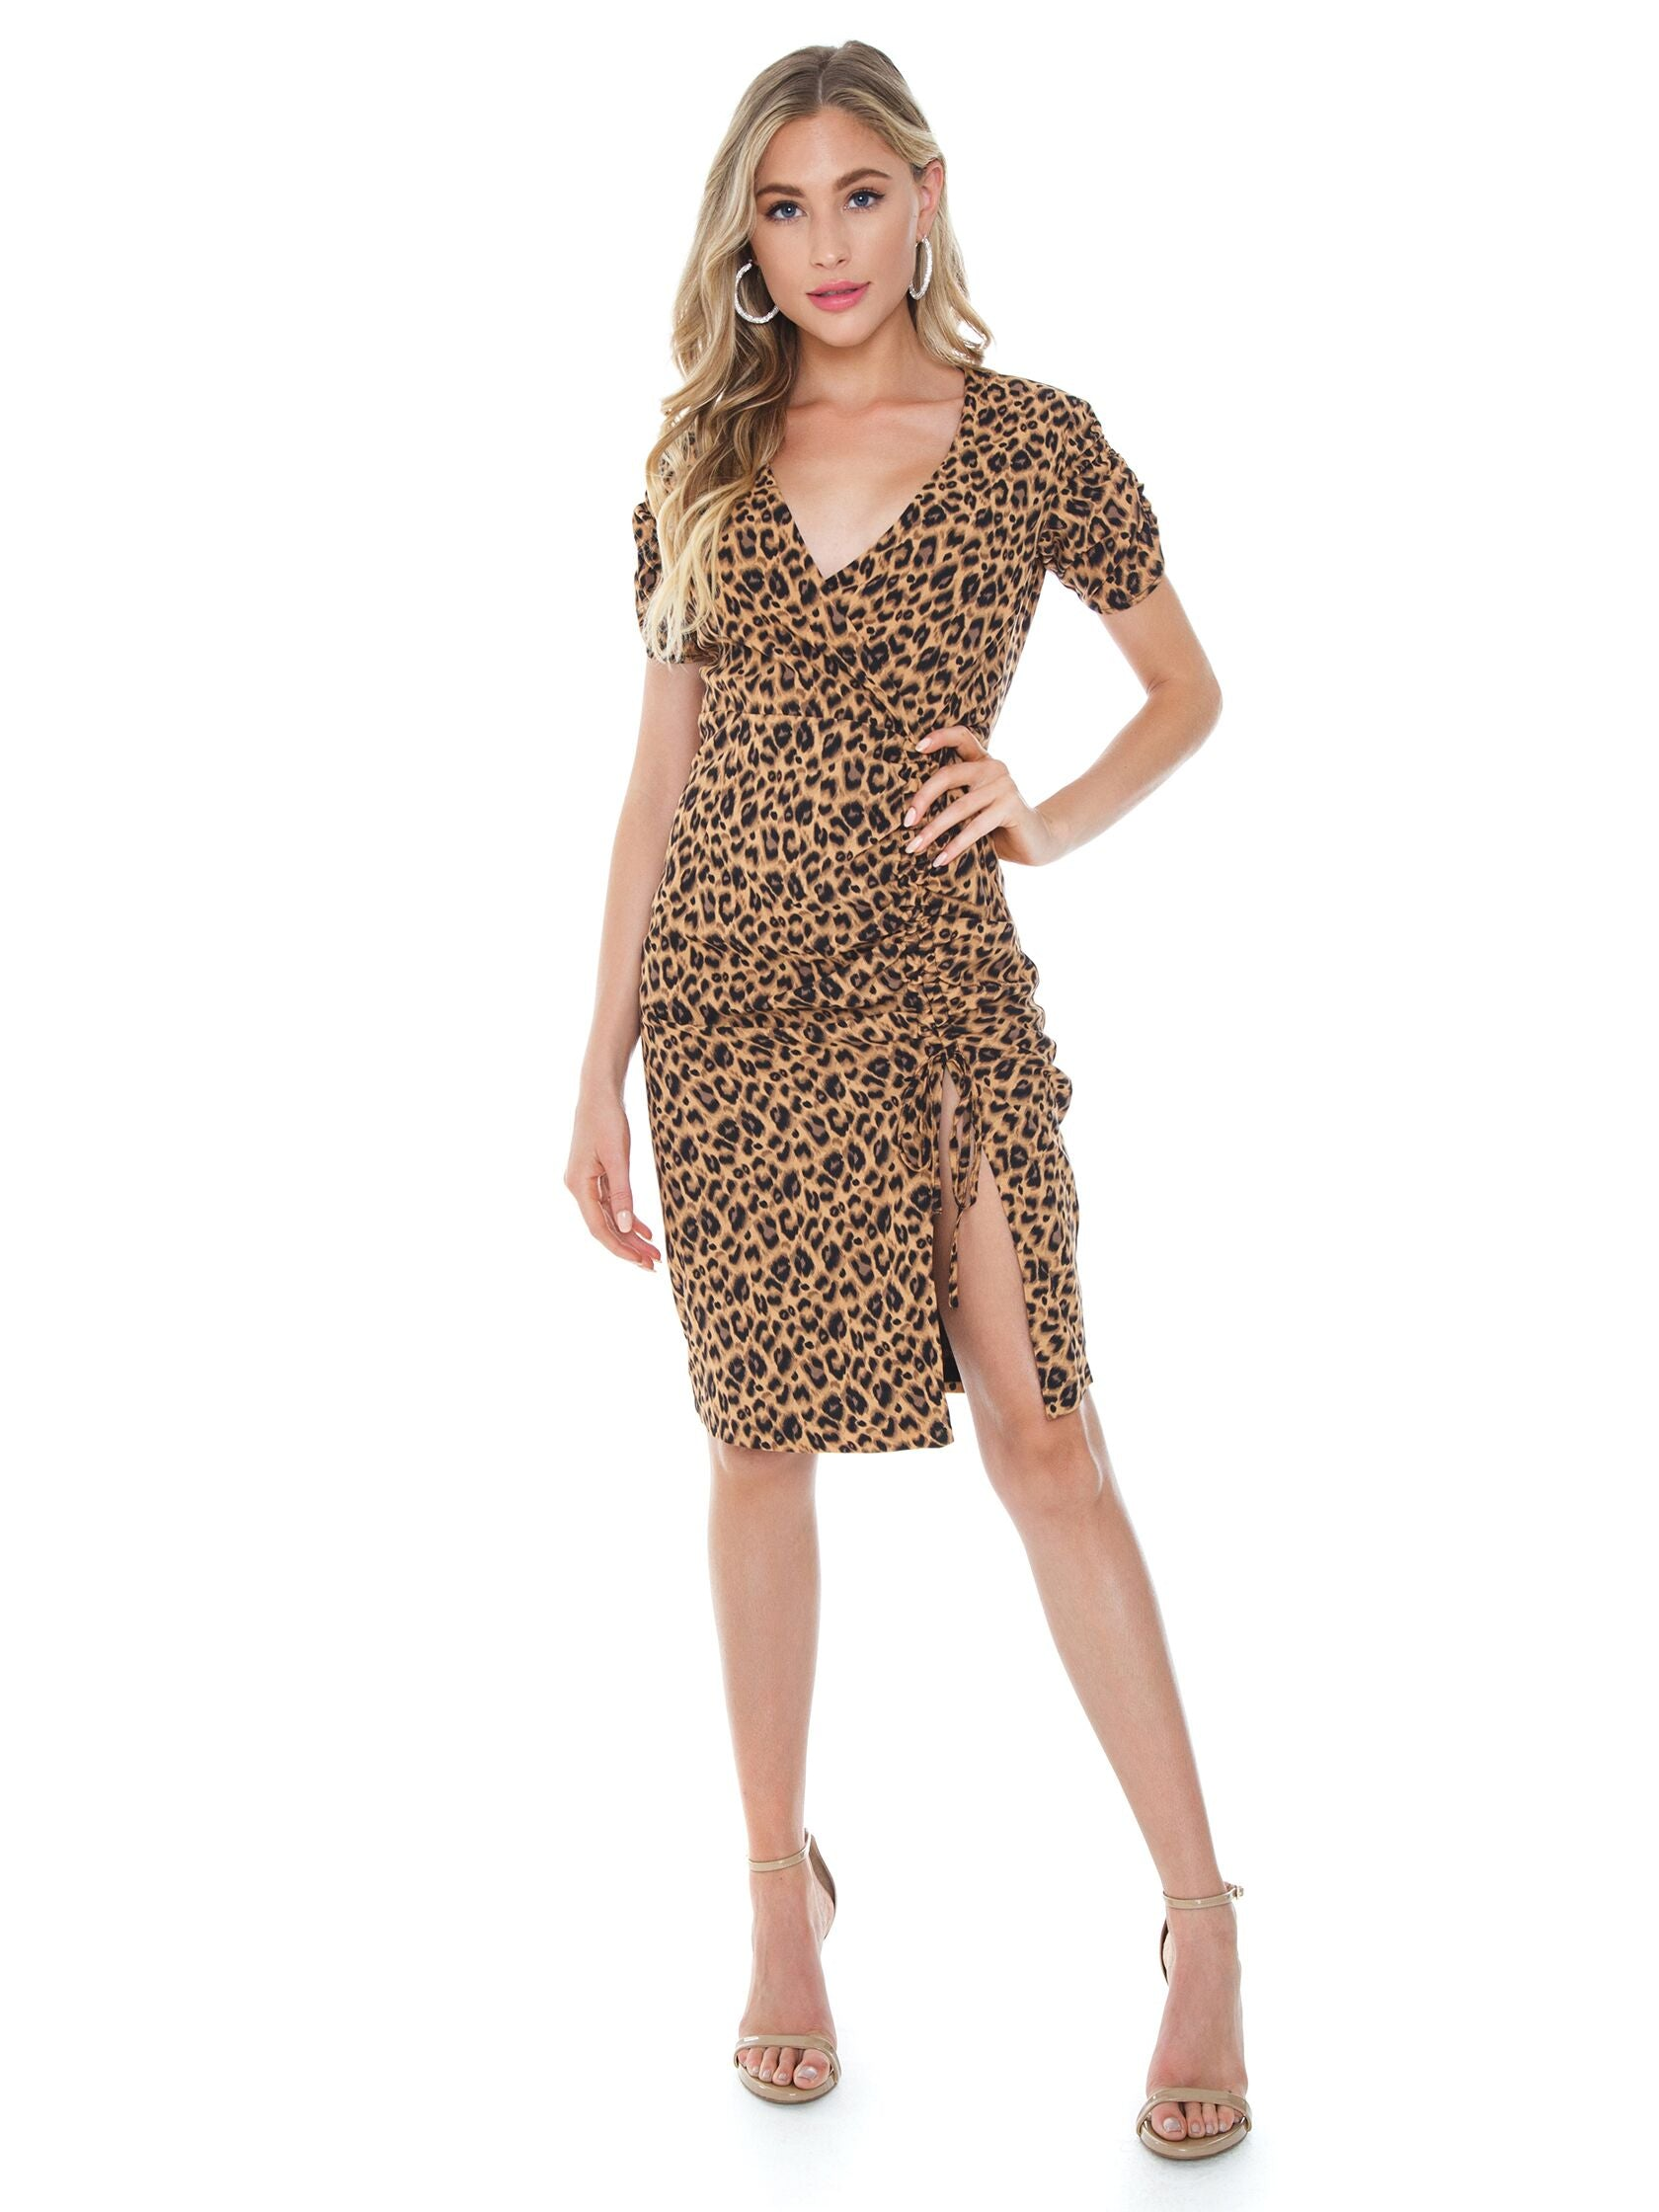 Girl outfit in a dress rental from BARDOT called Nicola Midi Dress